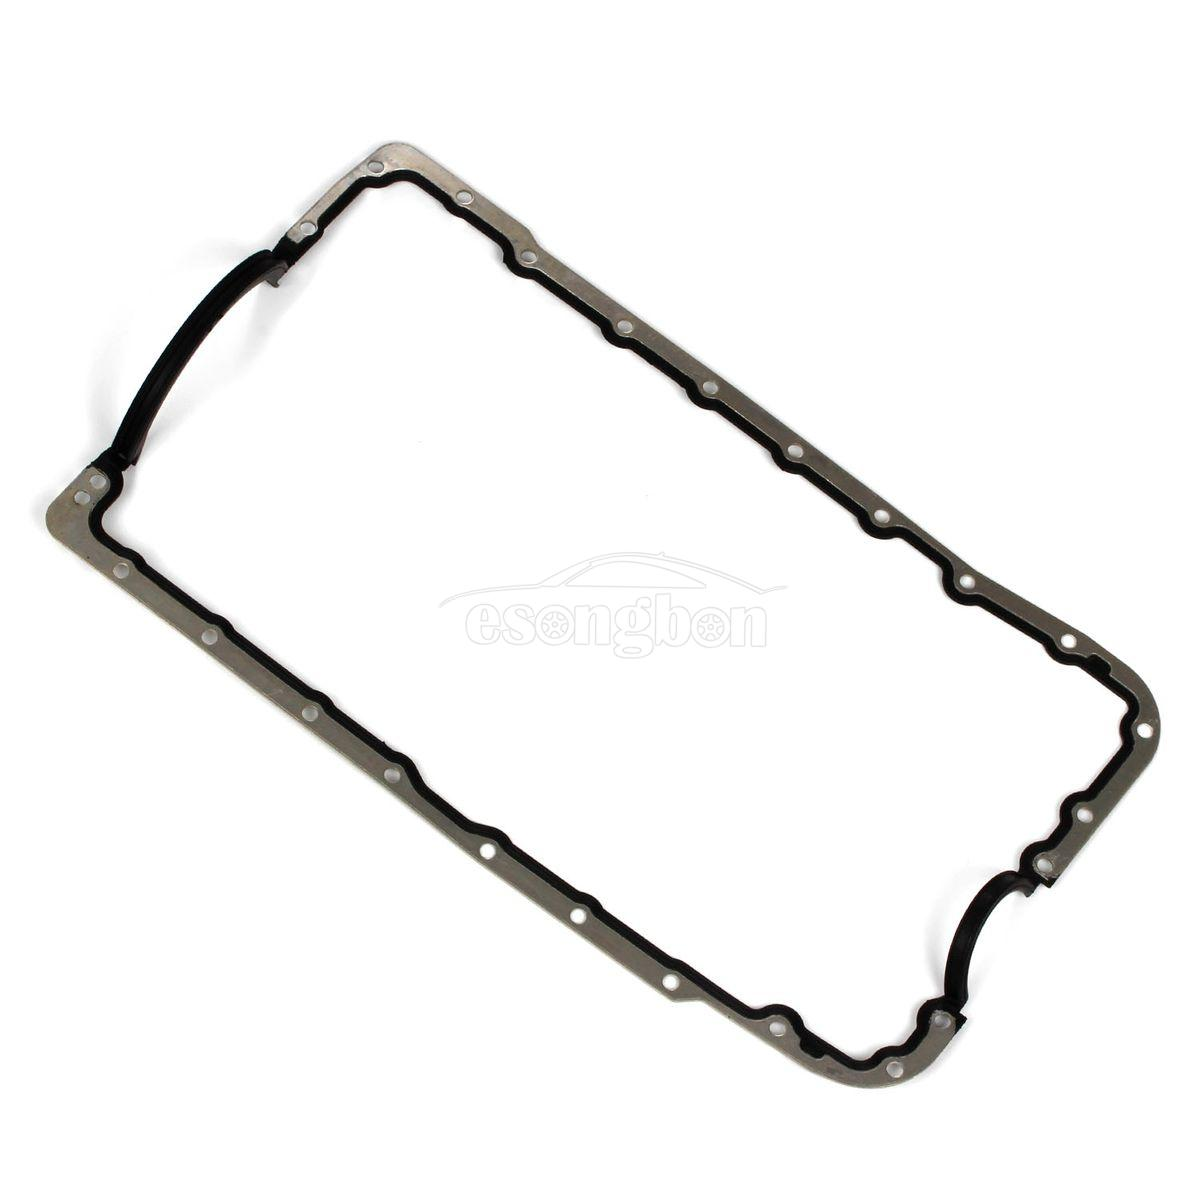 Oil Pan Gasket Set Fits 94 11 Ford Aerostar Explorer